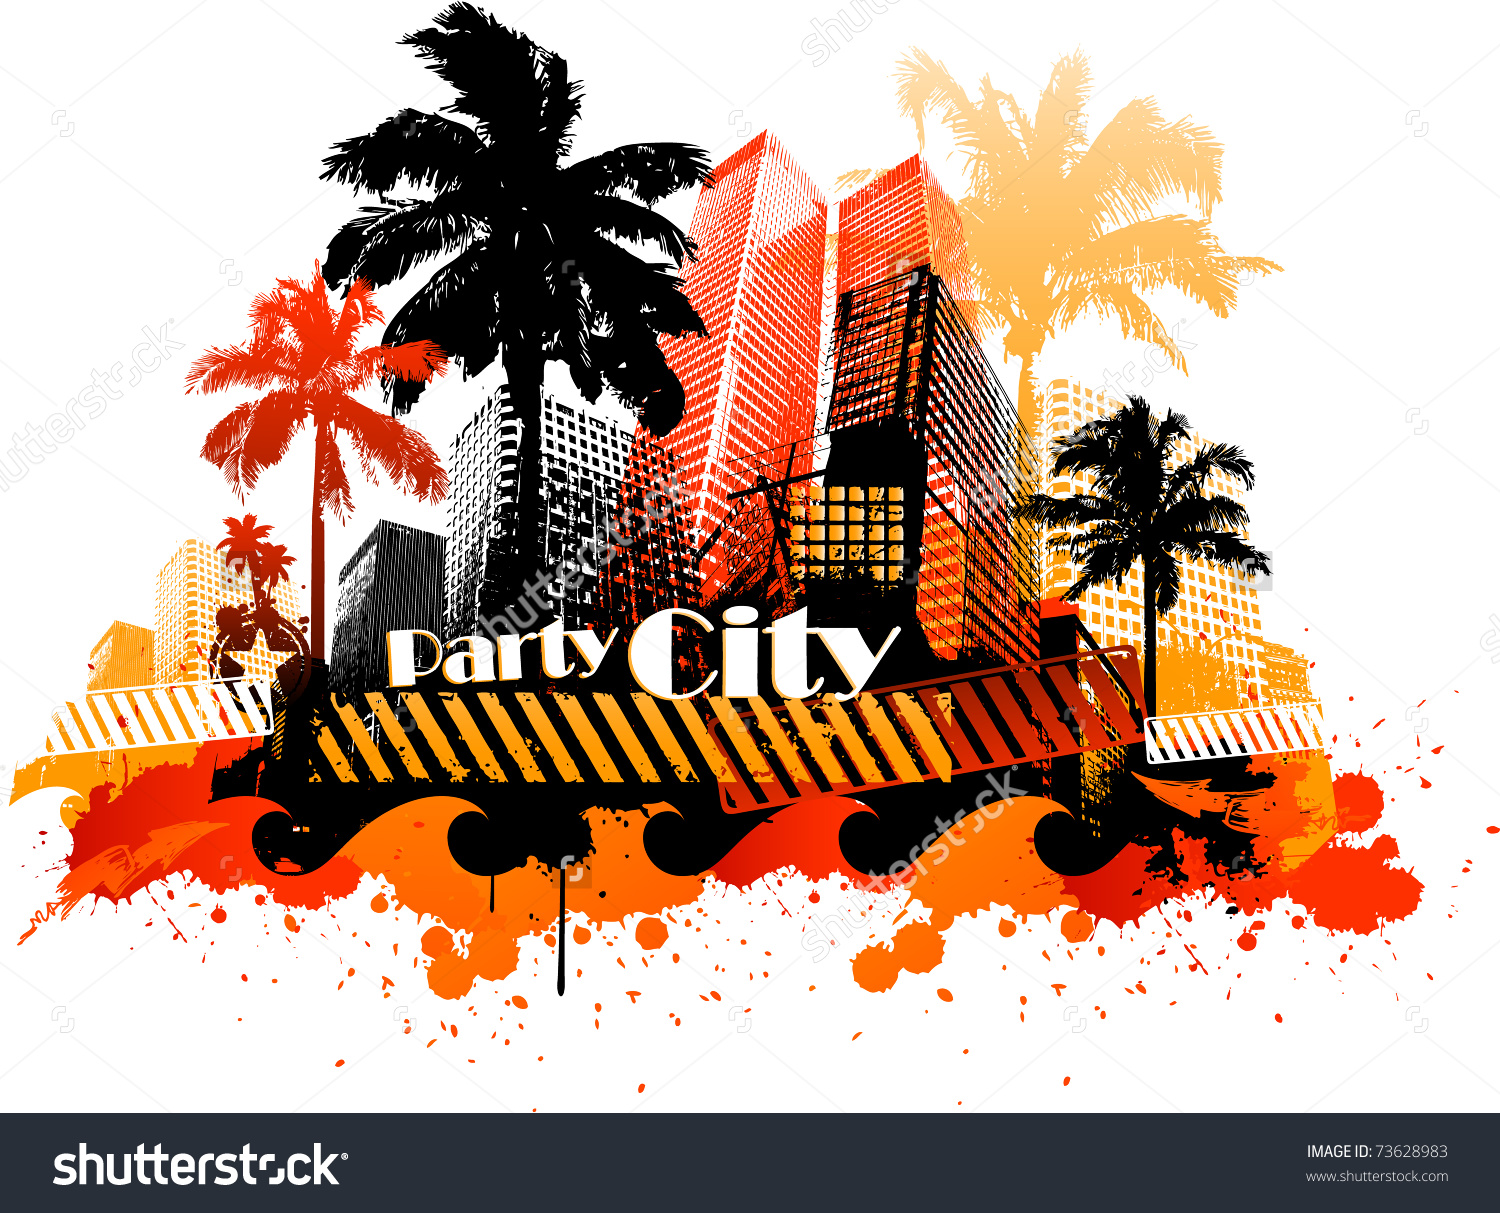 South beach images clipart.